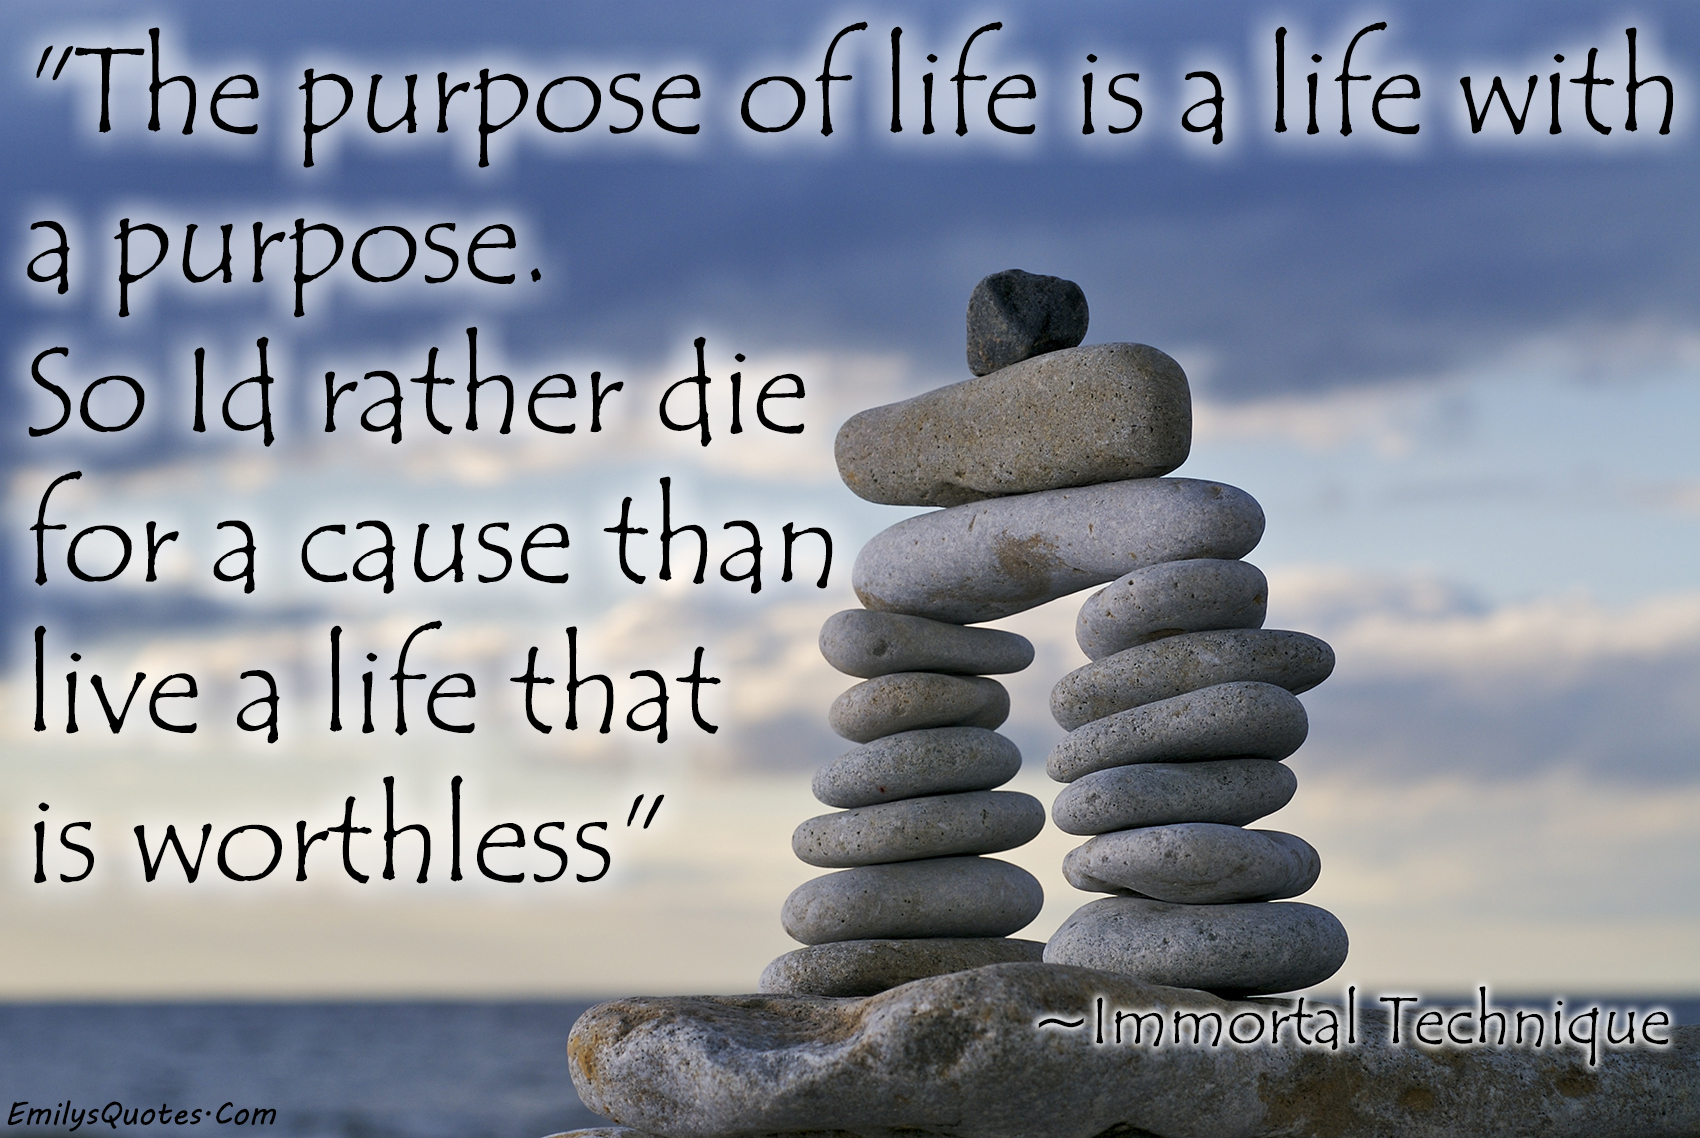 Life Inspirational Quotes The Purpose Of Life Is A Life With A Purposeso I'd Rather Die